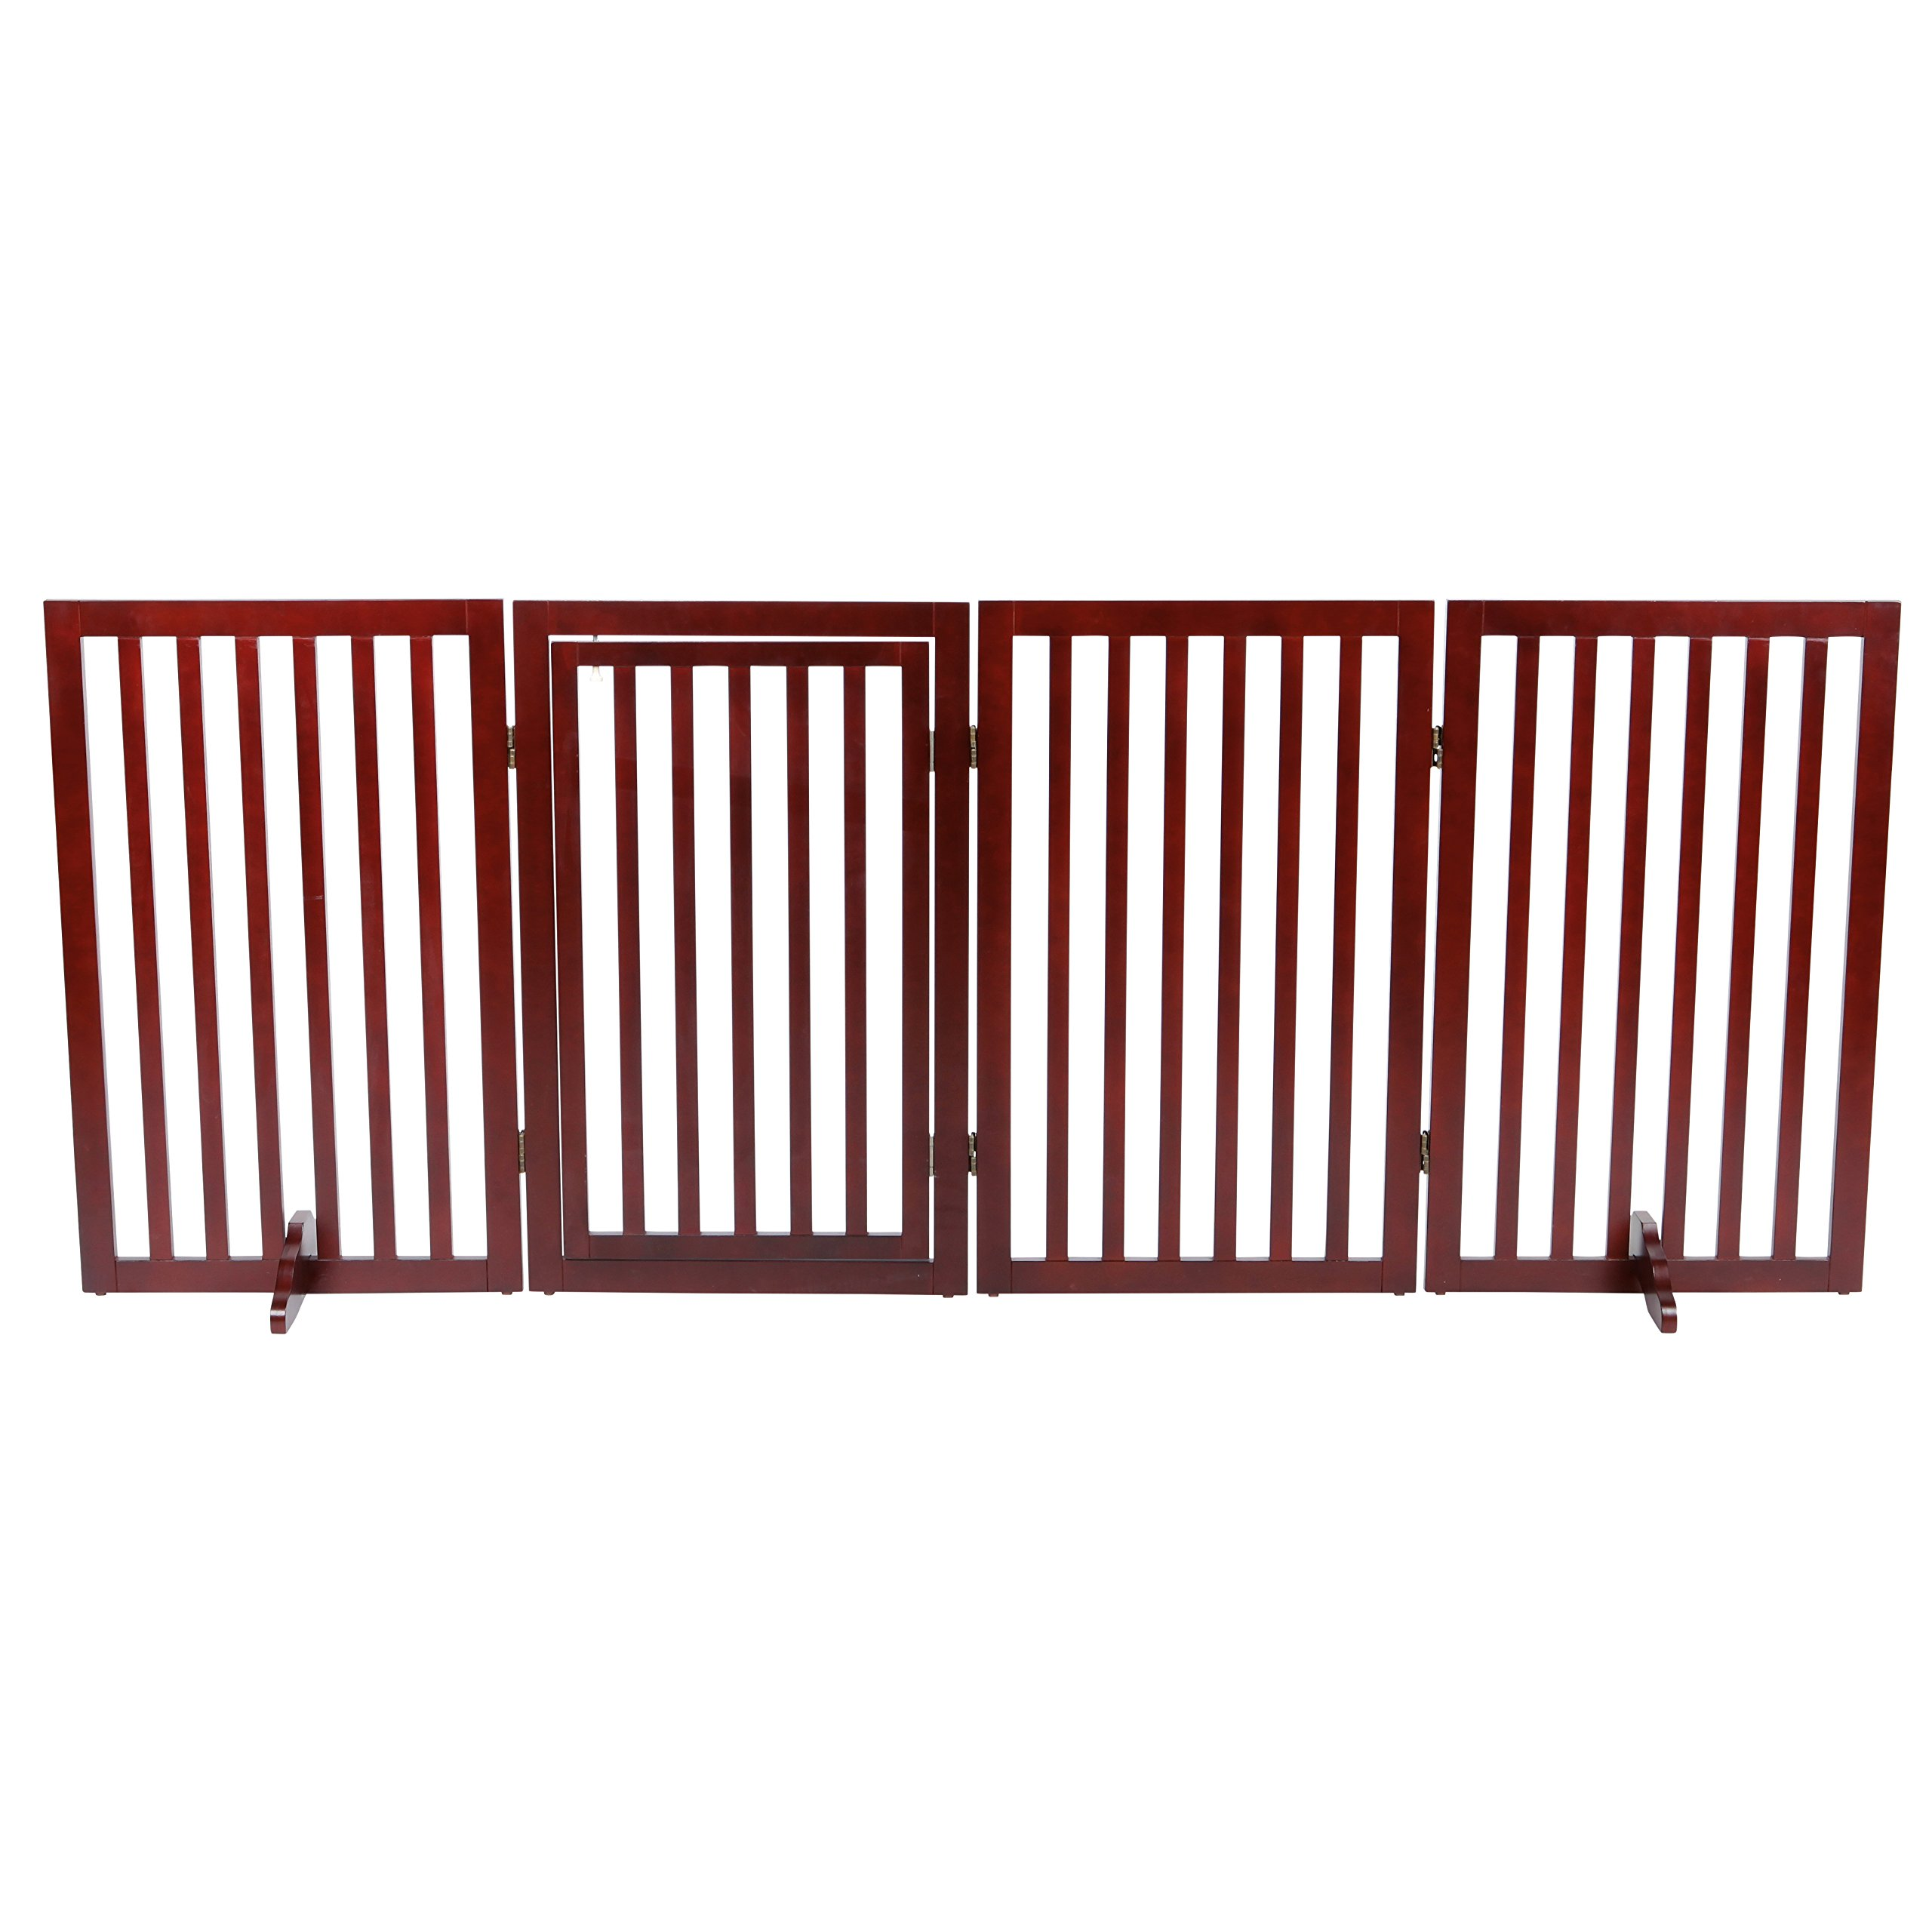 Trixie Pet Products Convertible Wooden Dog Gate